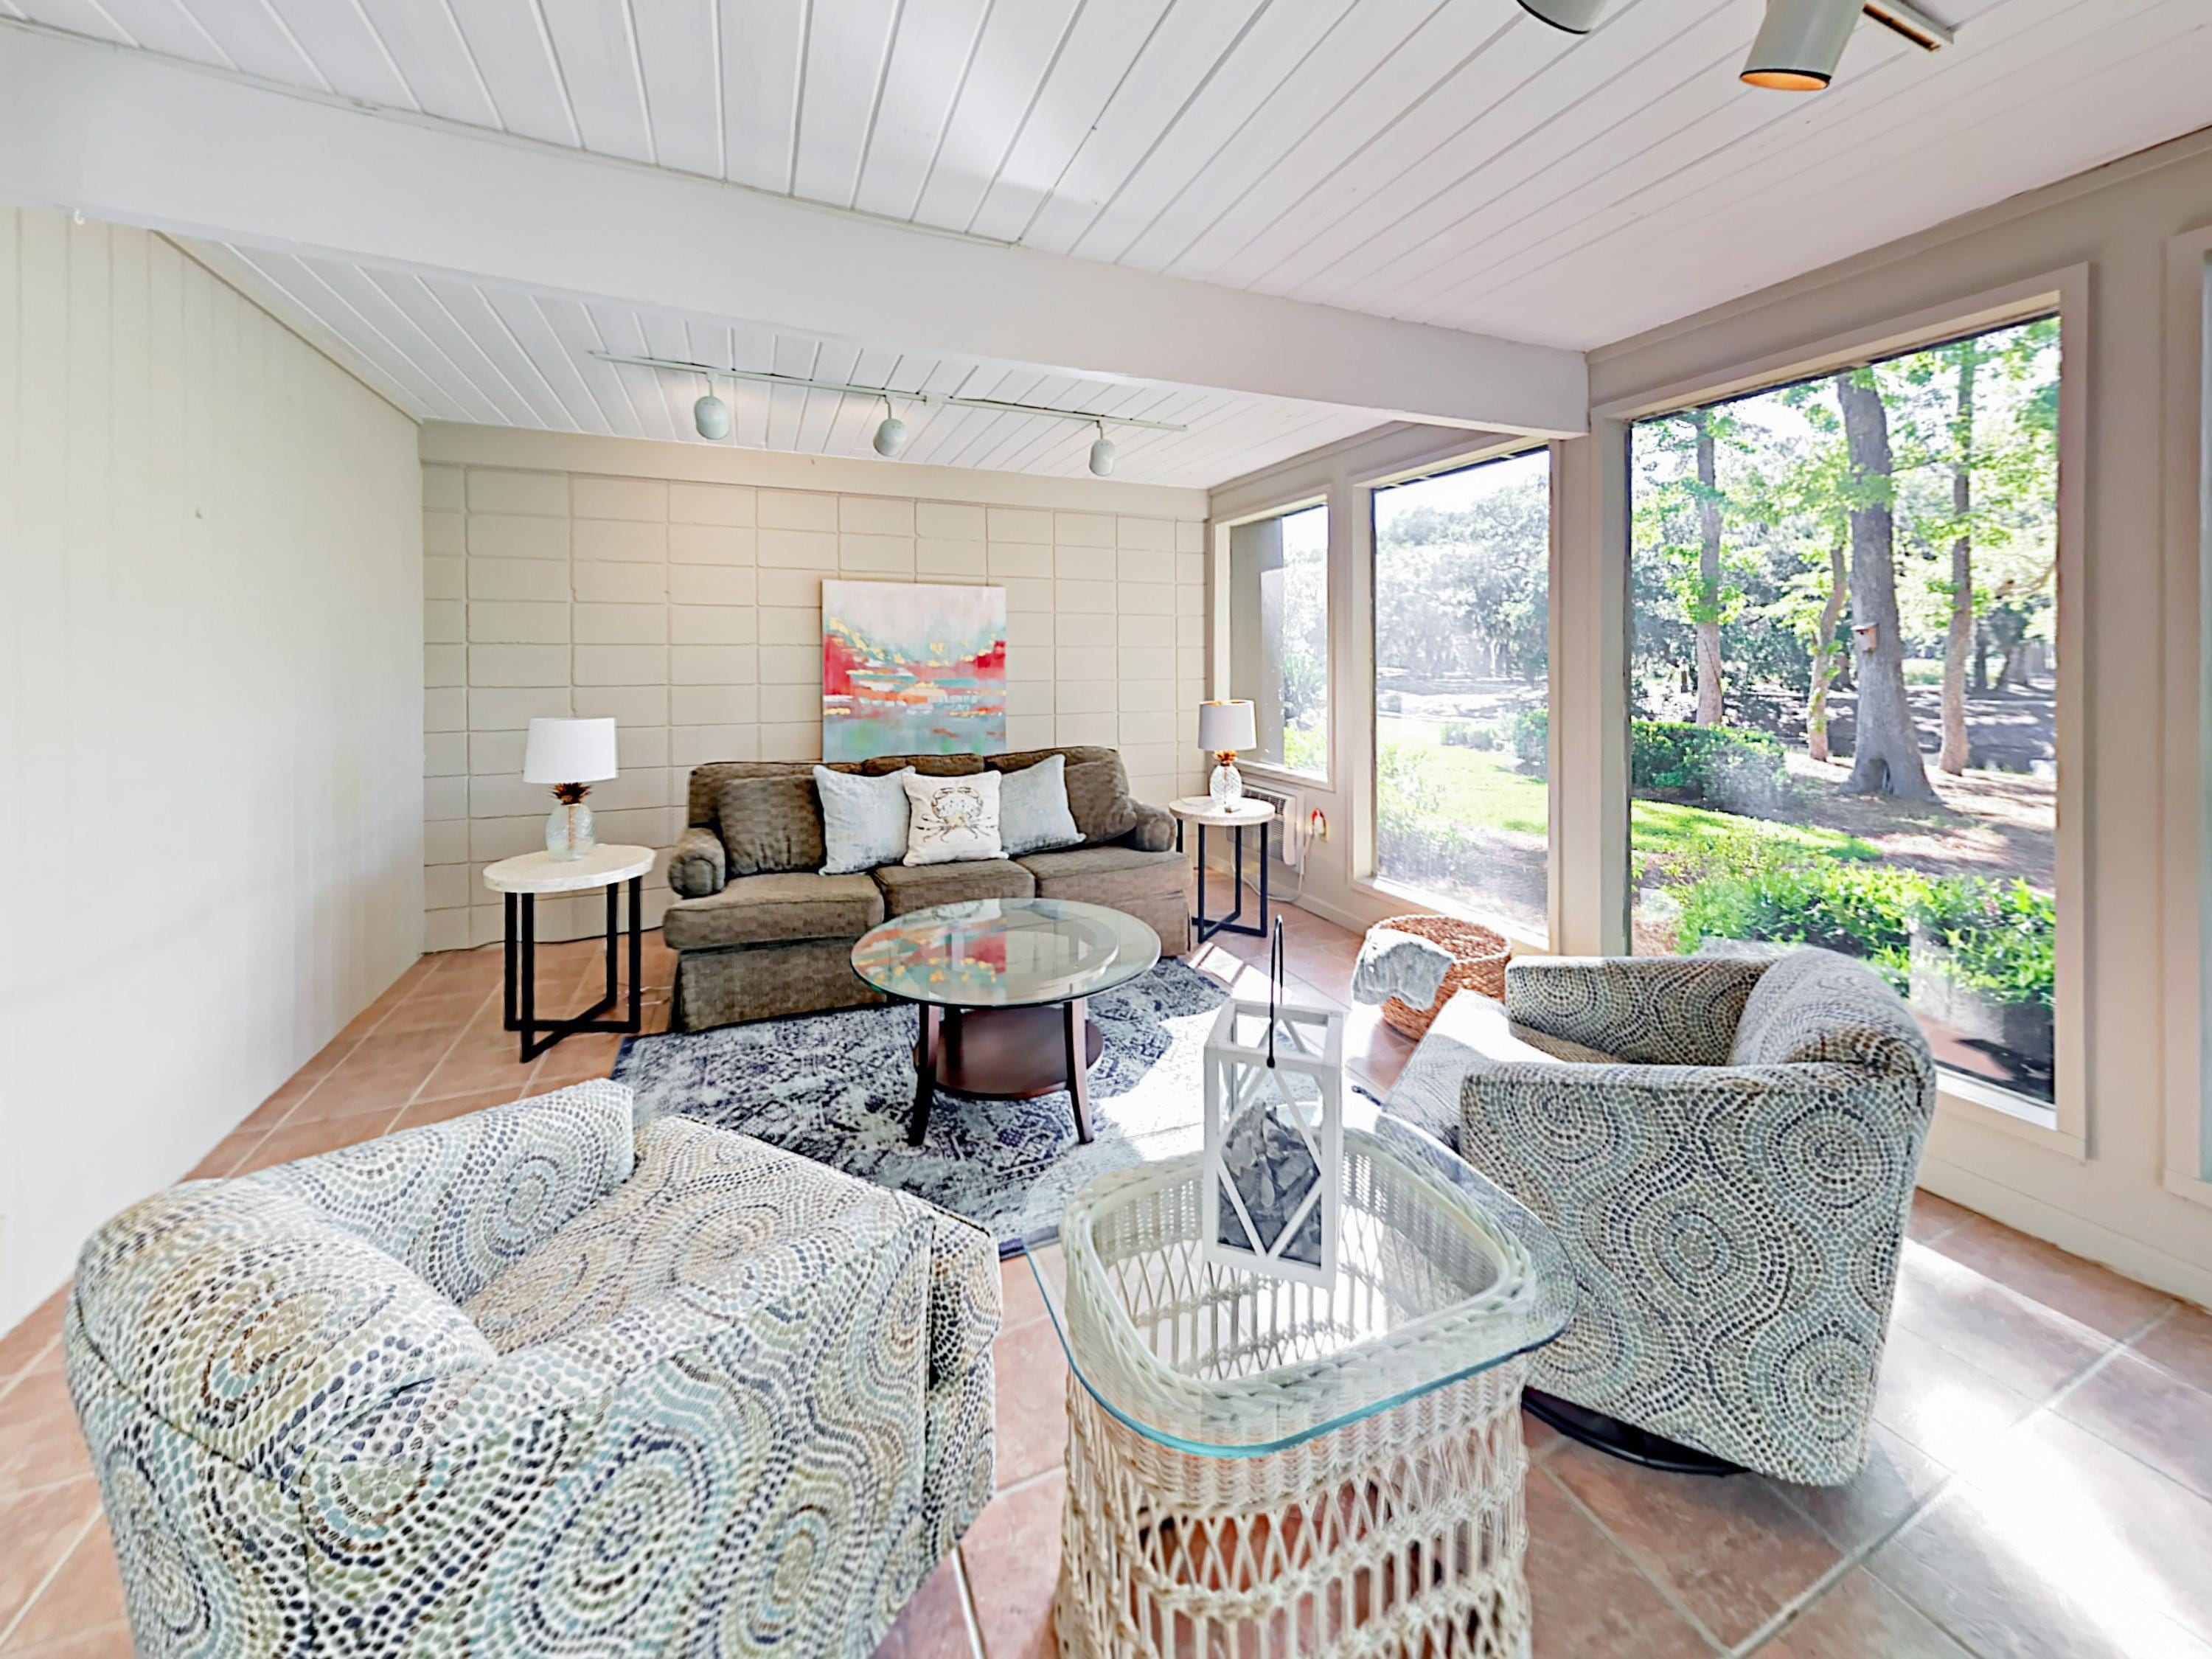 The sunroom offers seating for 6, with lovely lagoon and golf views.